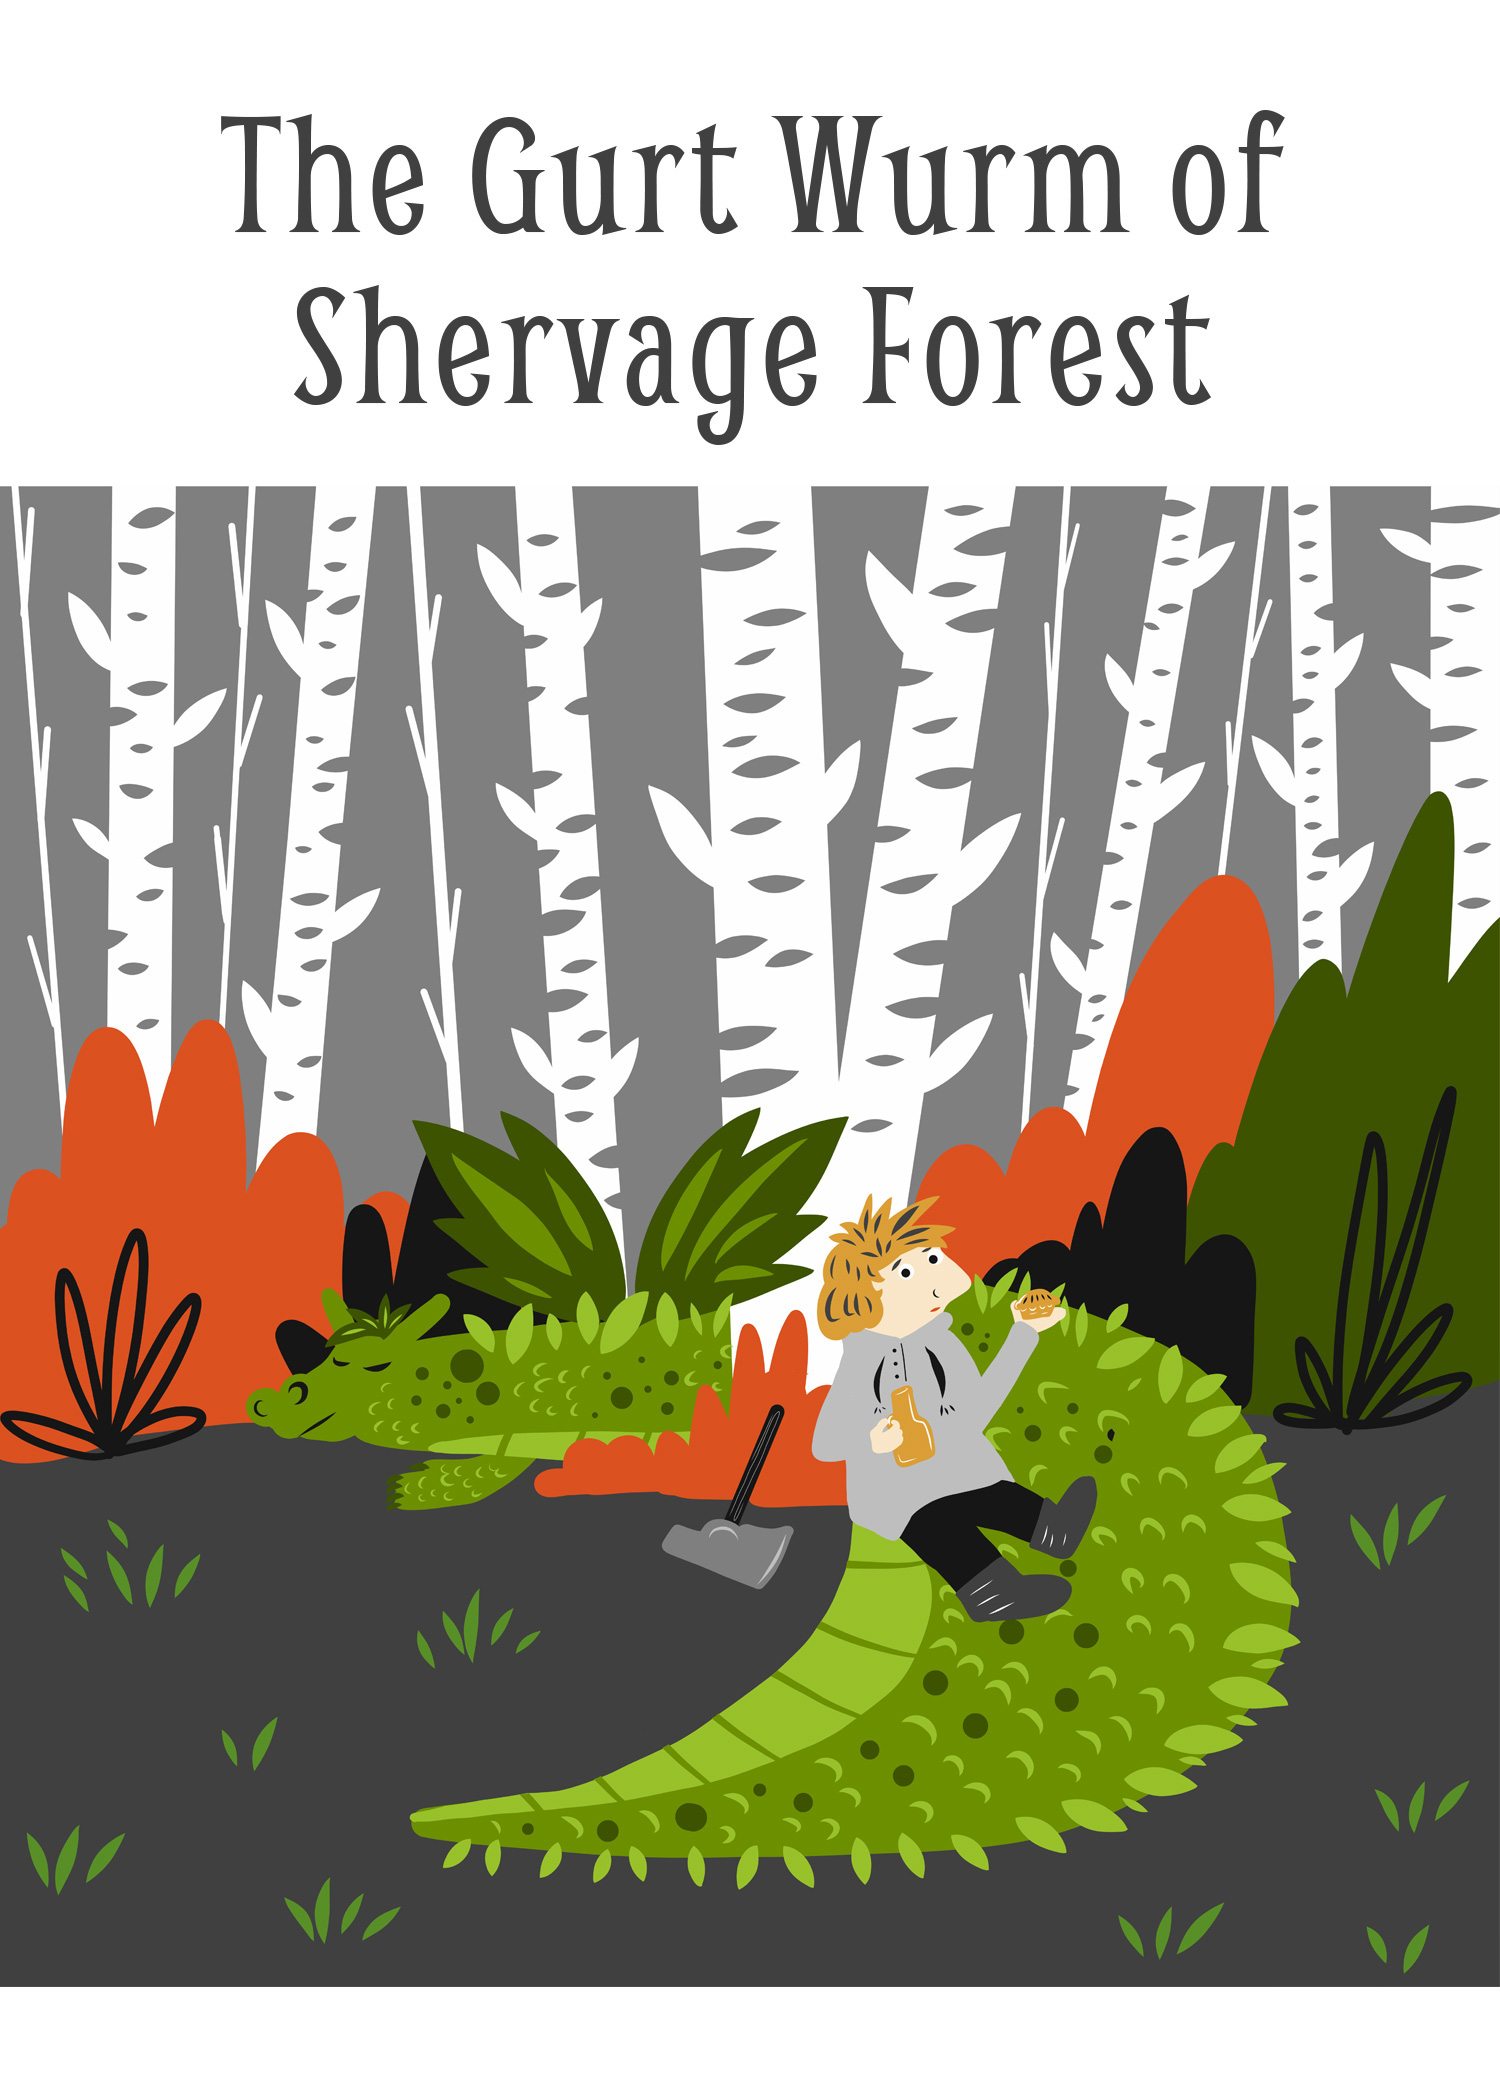 The Gurt Wurm of Shervage Forest